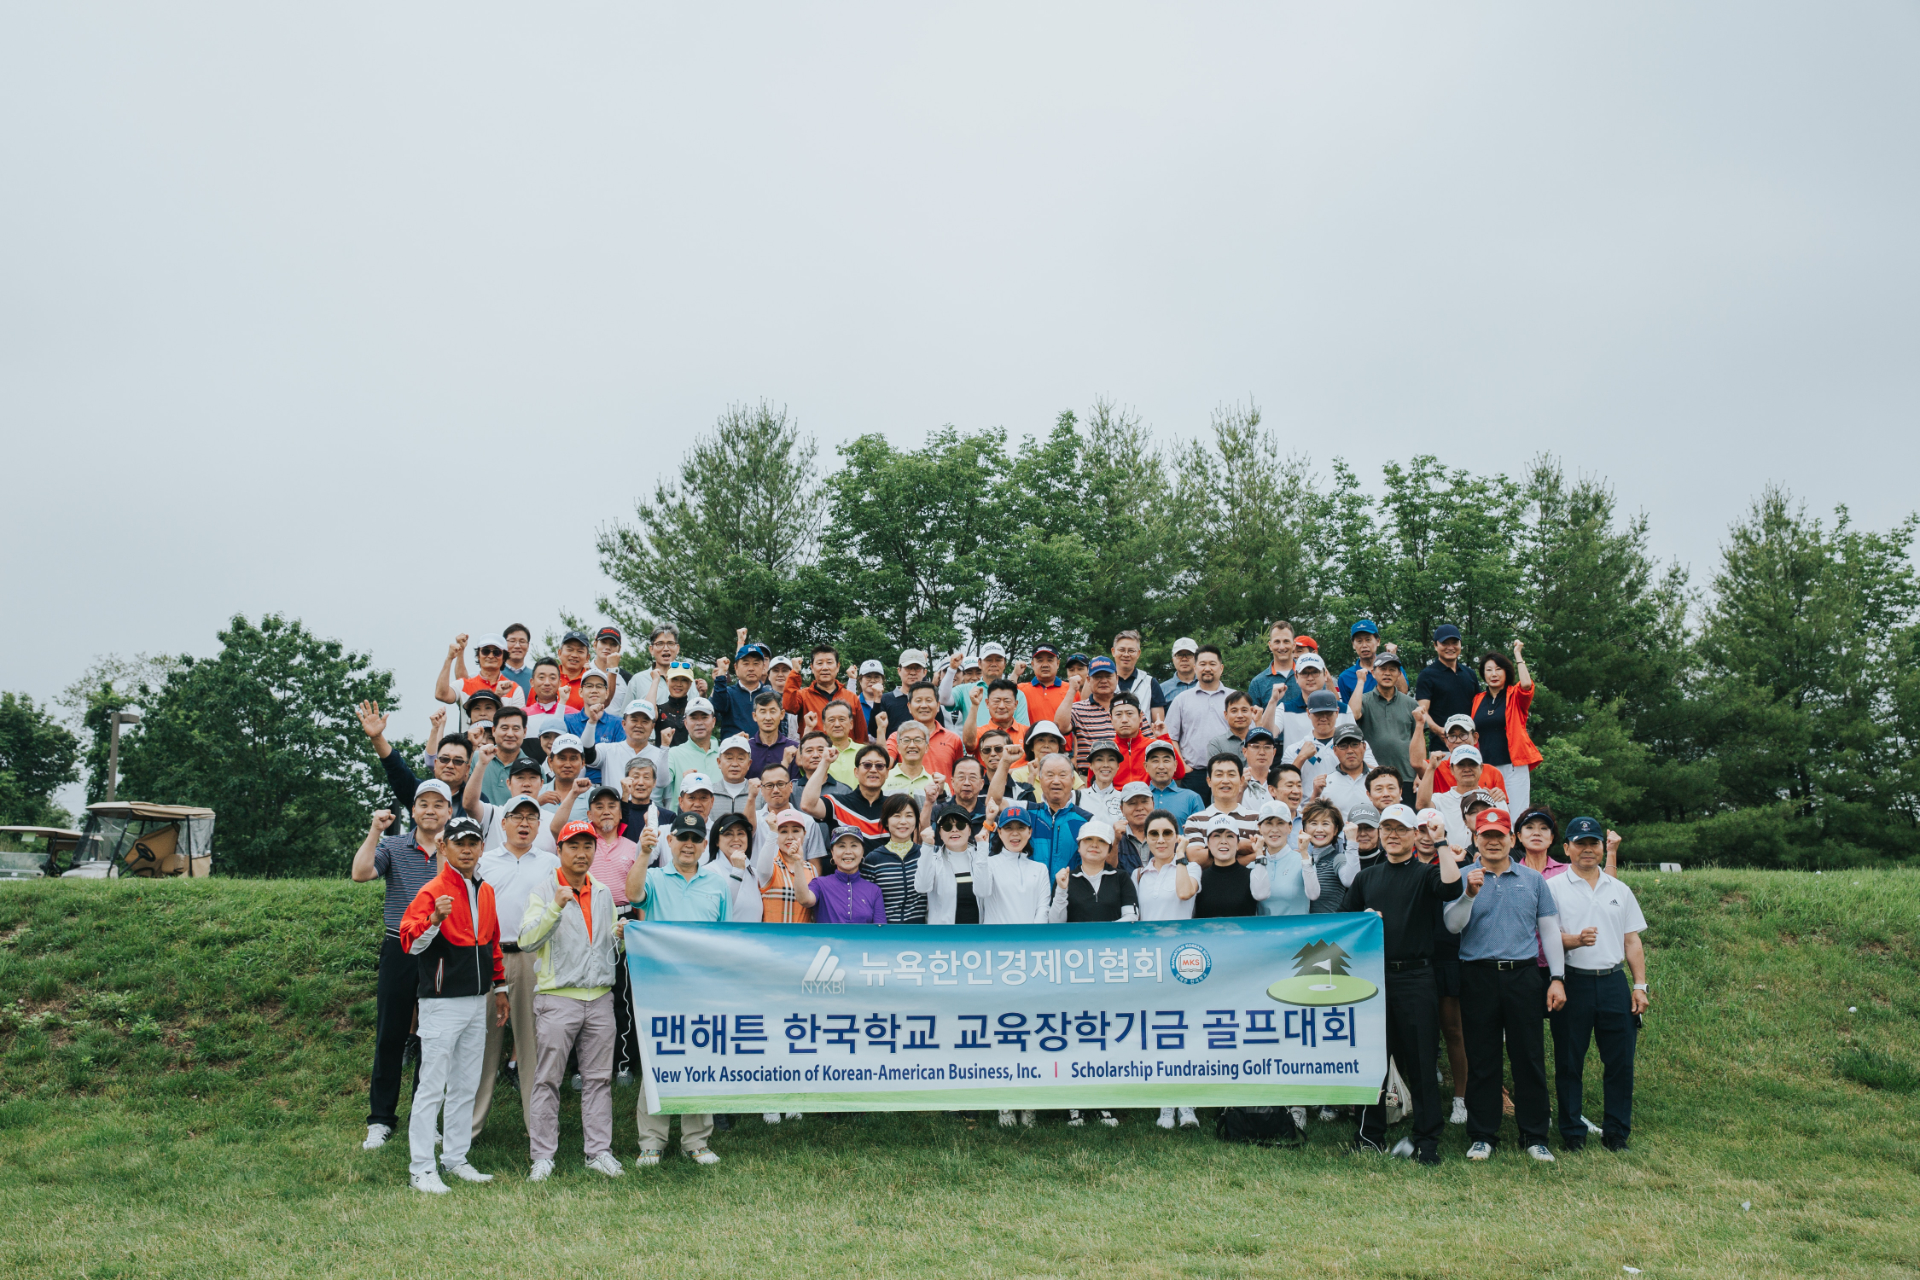 https://nykbi.com/new/wp-content/uploads/2019/07/190619-Scholarship-Fundraising-Golf-Tournament-013.jpg